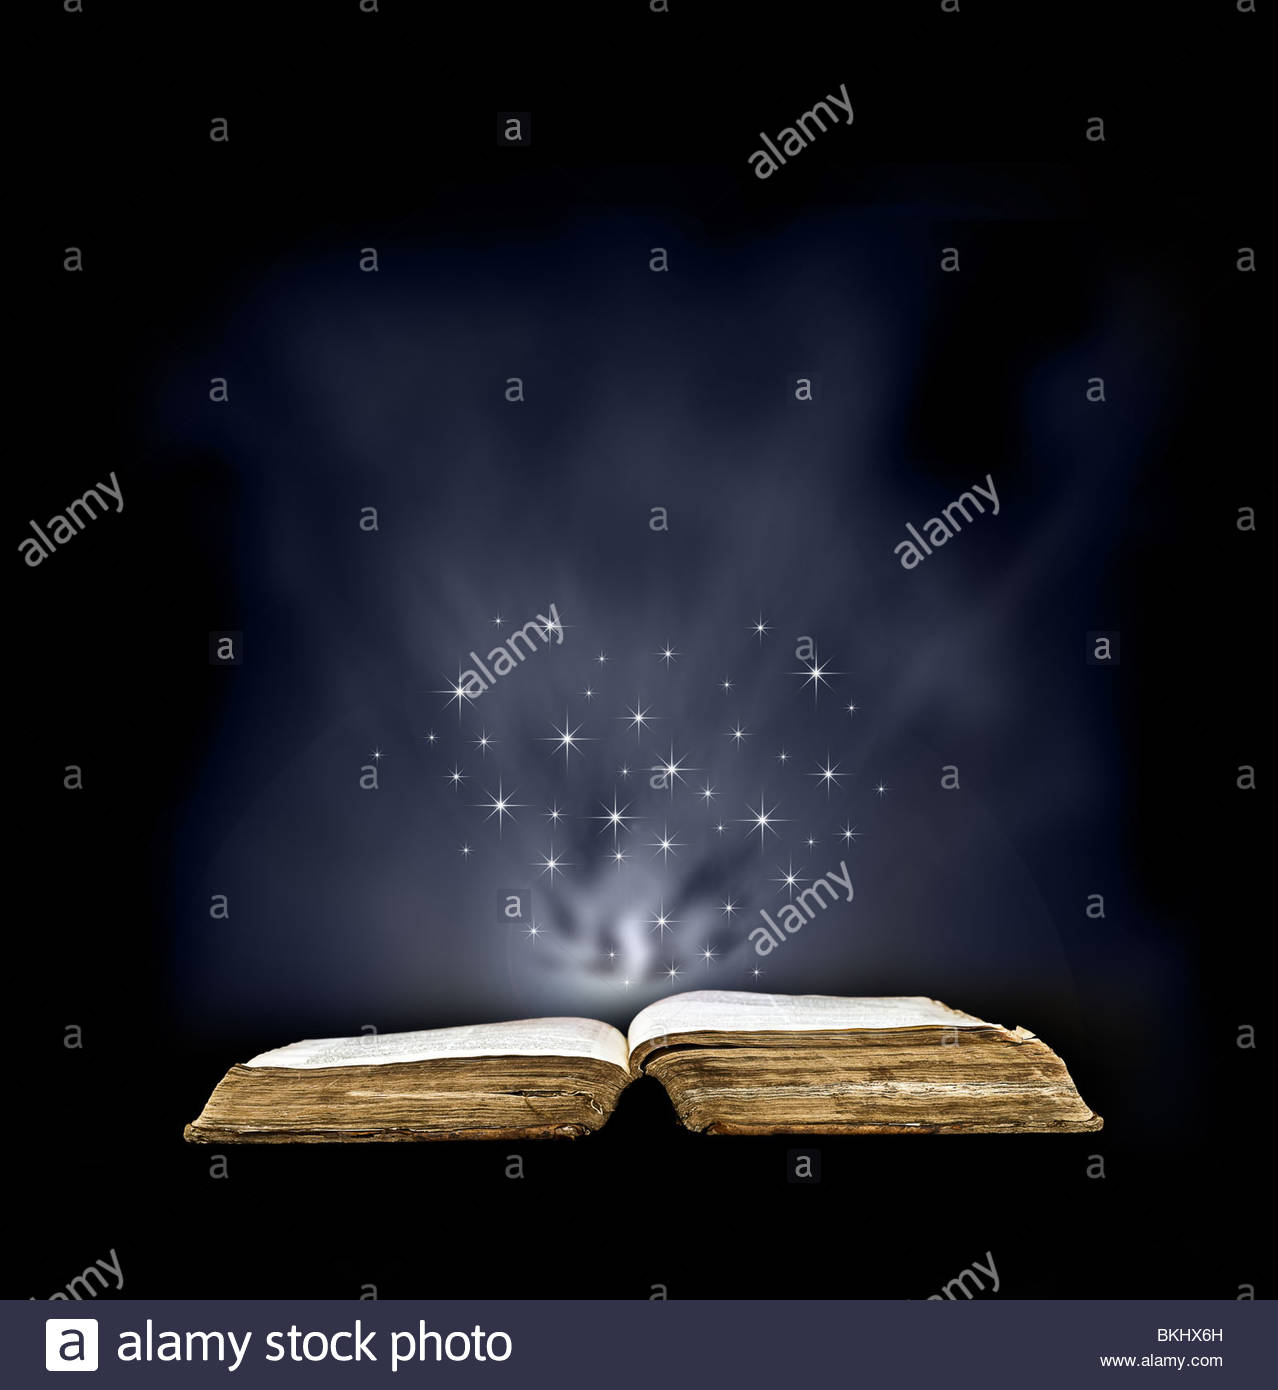 Magic book - Stock Image